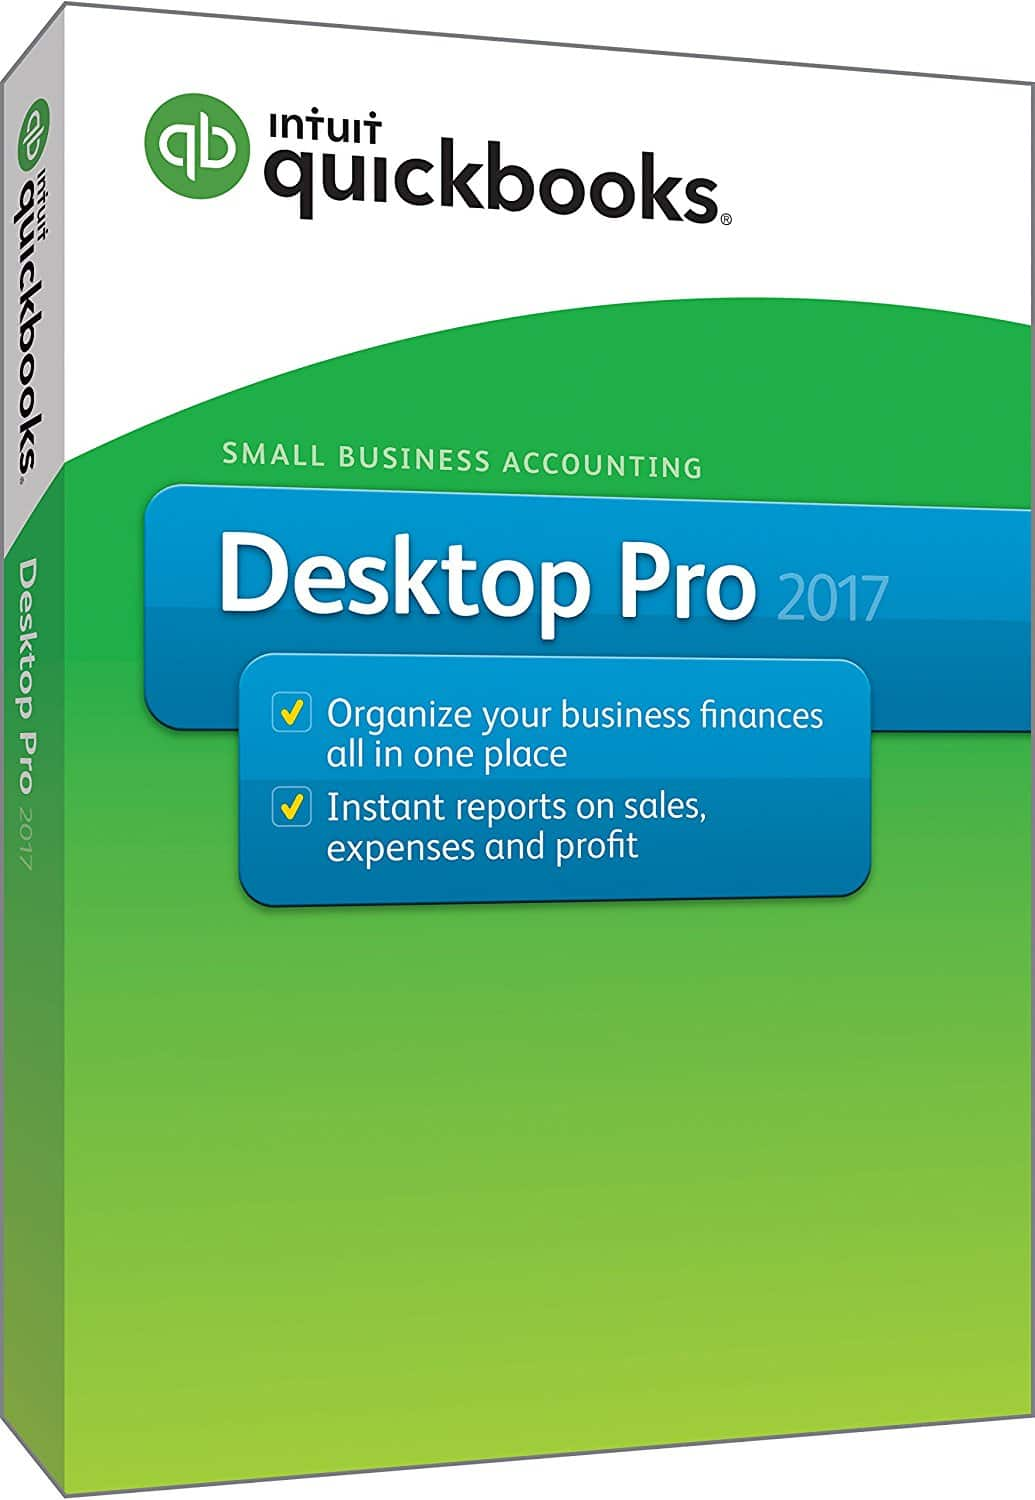 Intuit QuickBooks Desktop Pro 2017 Software (Small Business Accounting) $139.99 AC + Free Shipping via Newegg